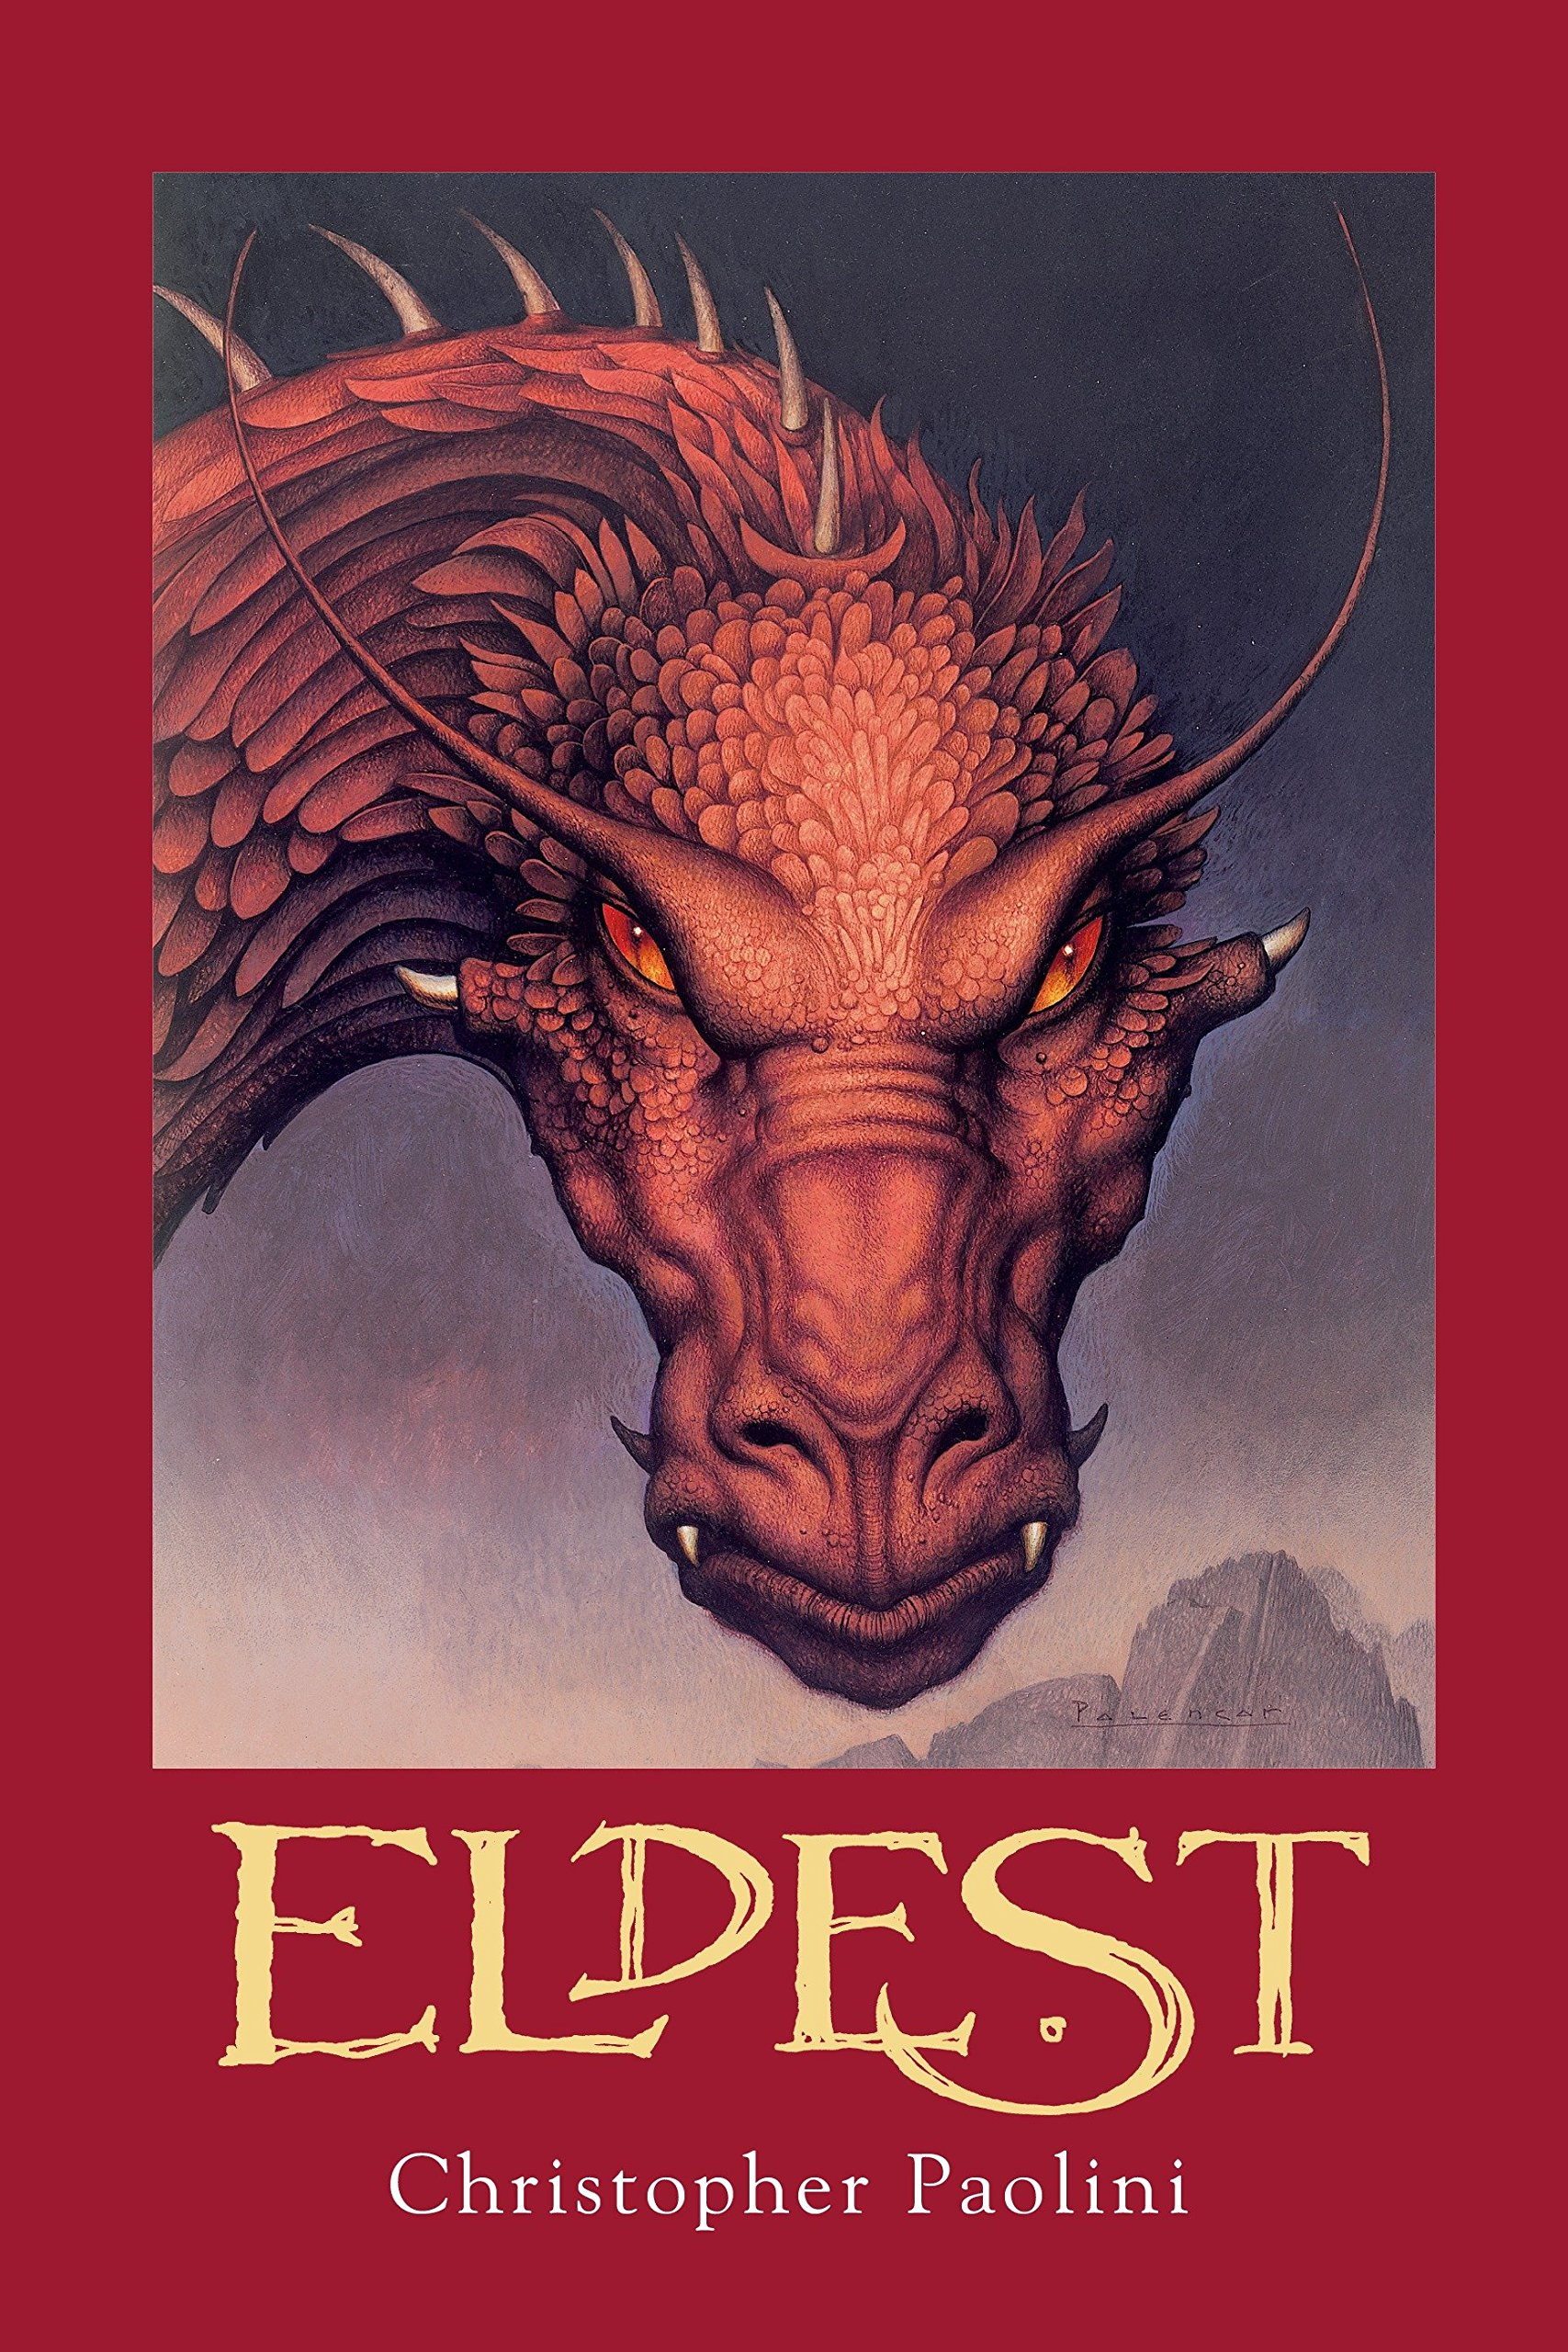 Christopher Paolini is the youngest best-selling author 8